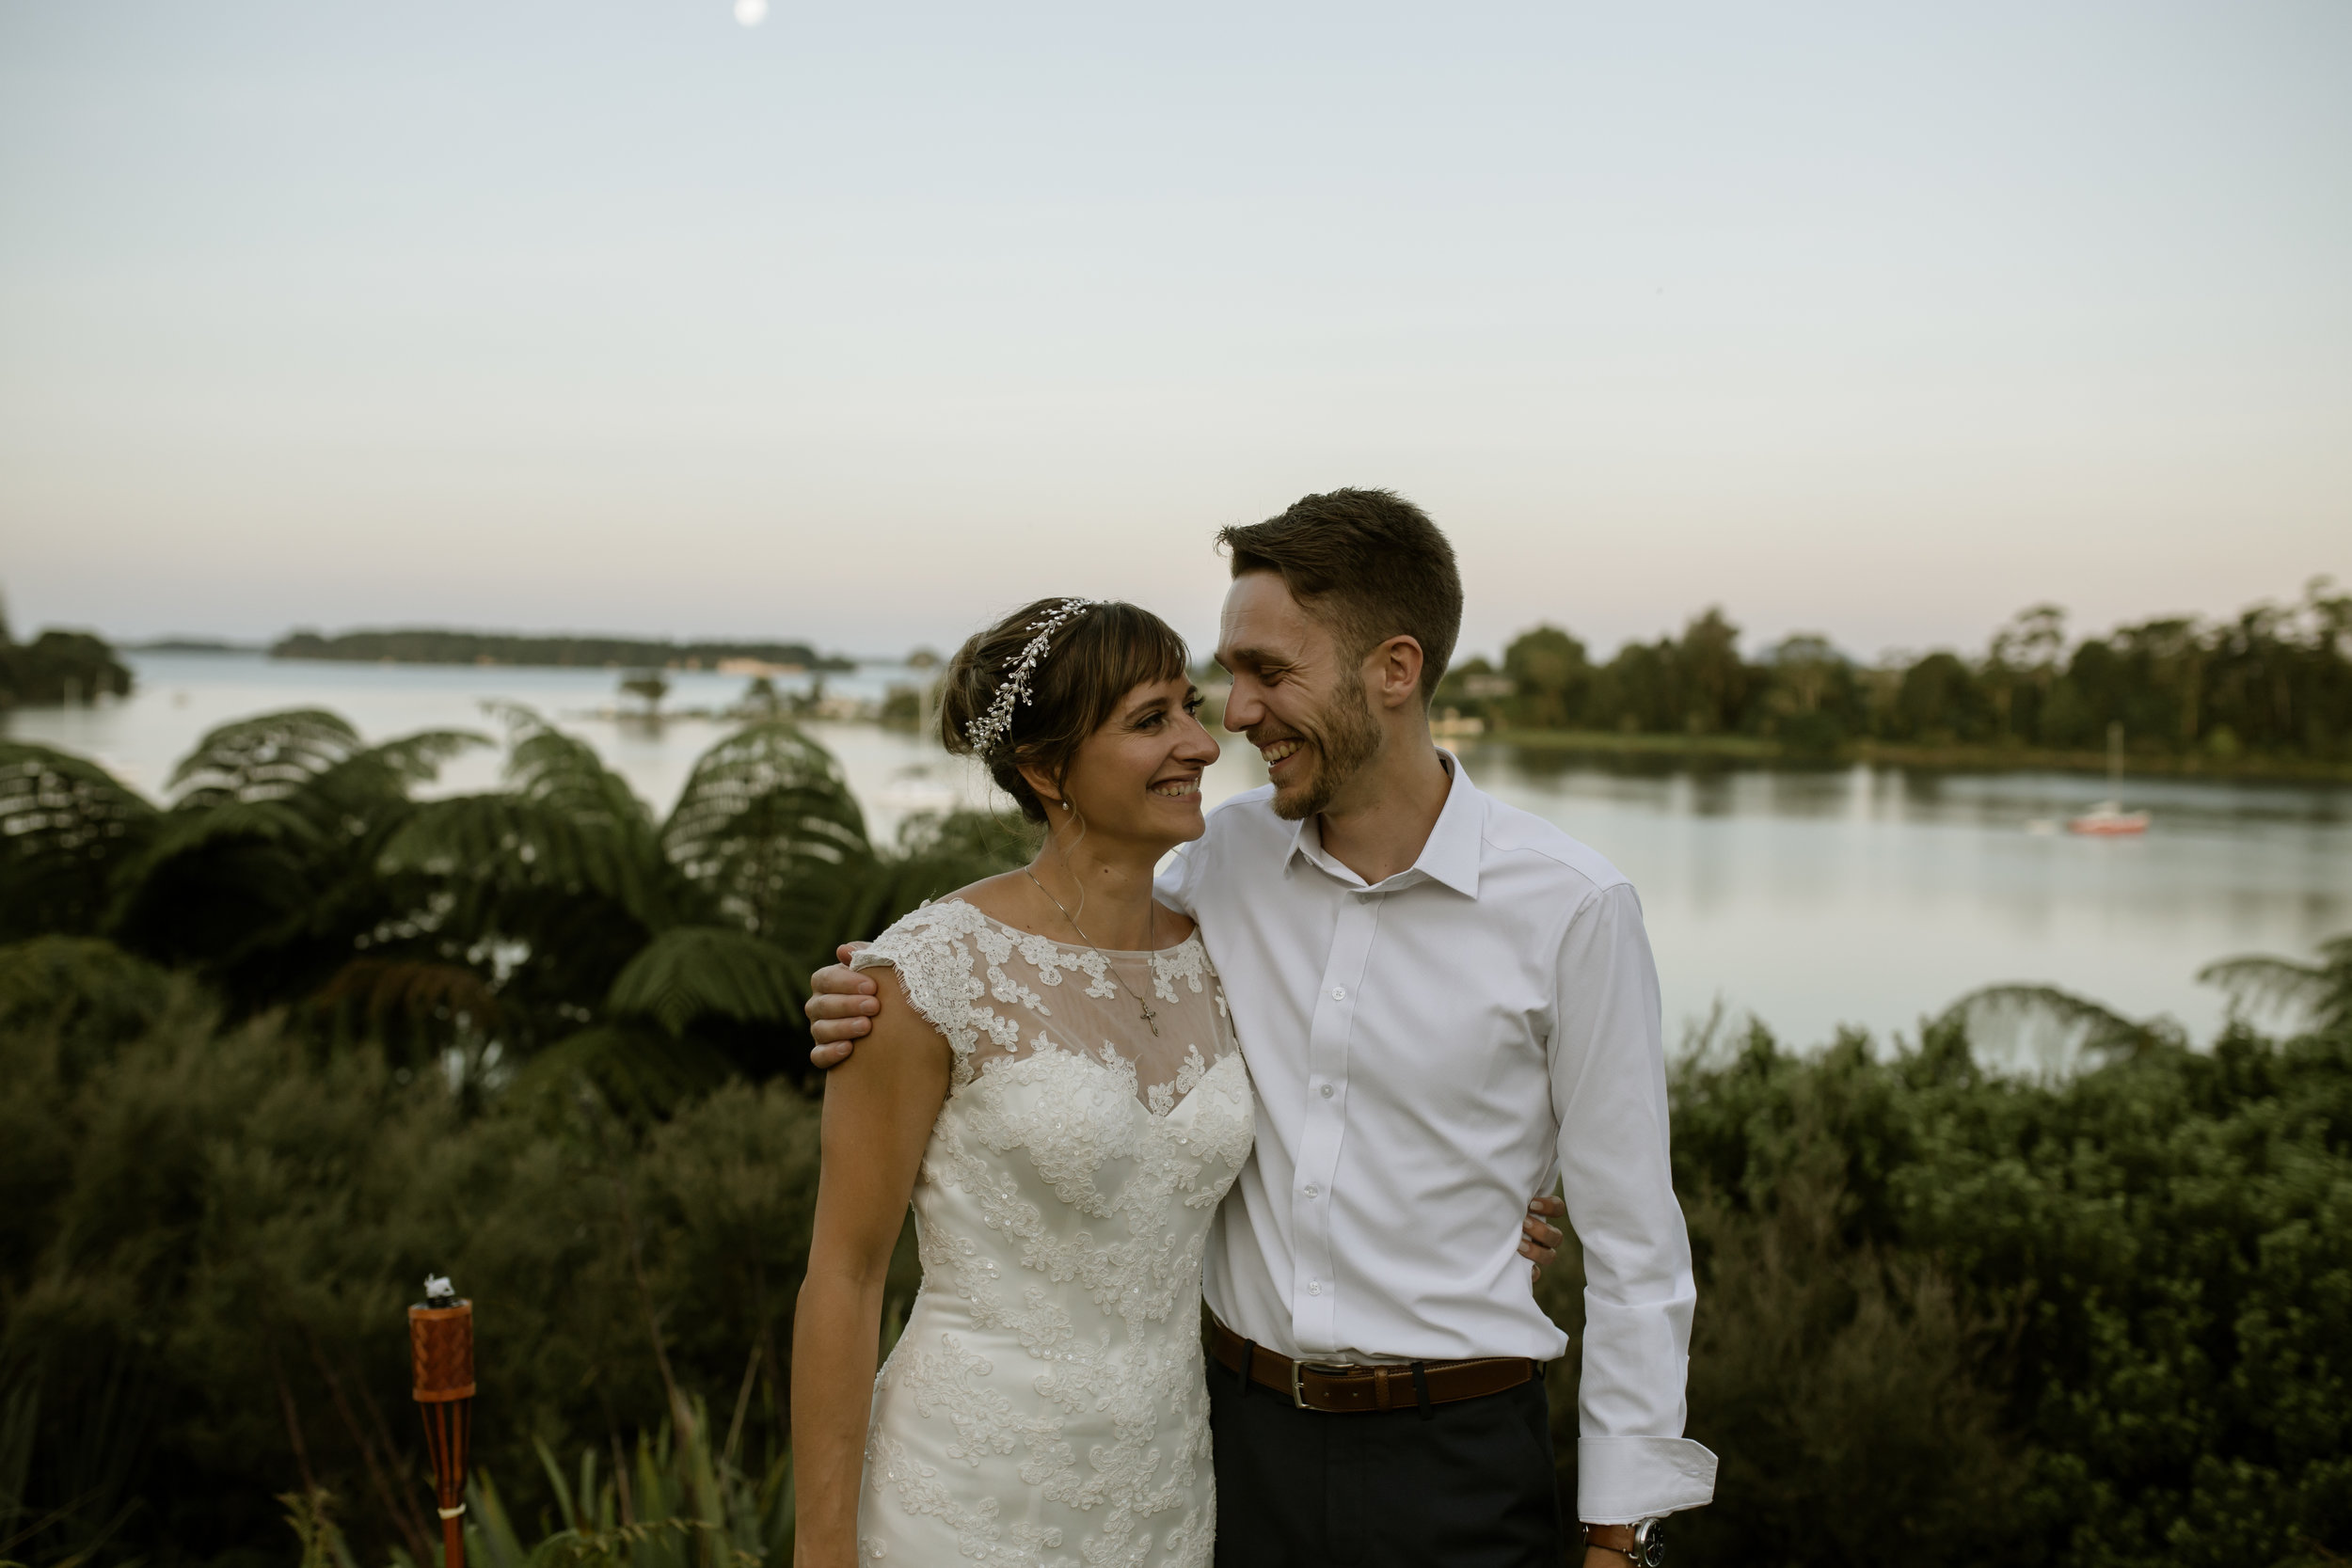 DANI & VALENTIN- 19TH JANUARY, 2019- TAURANGA, NEW ZEALAND